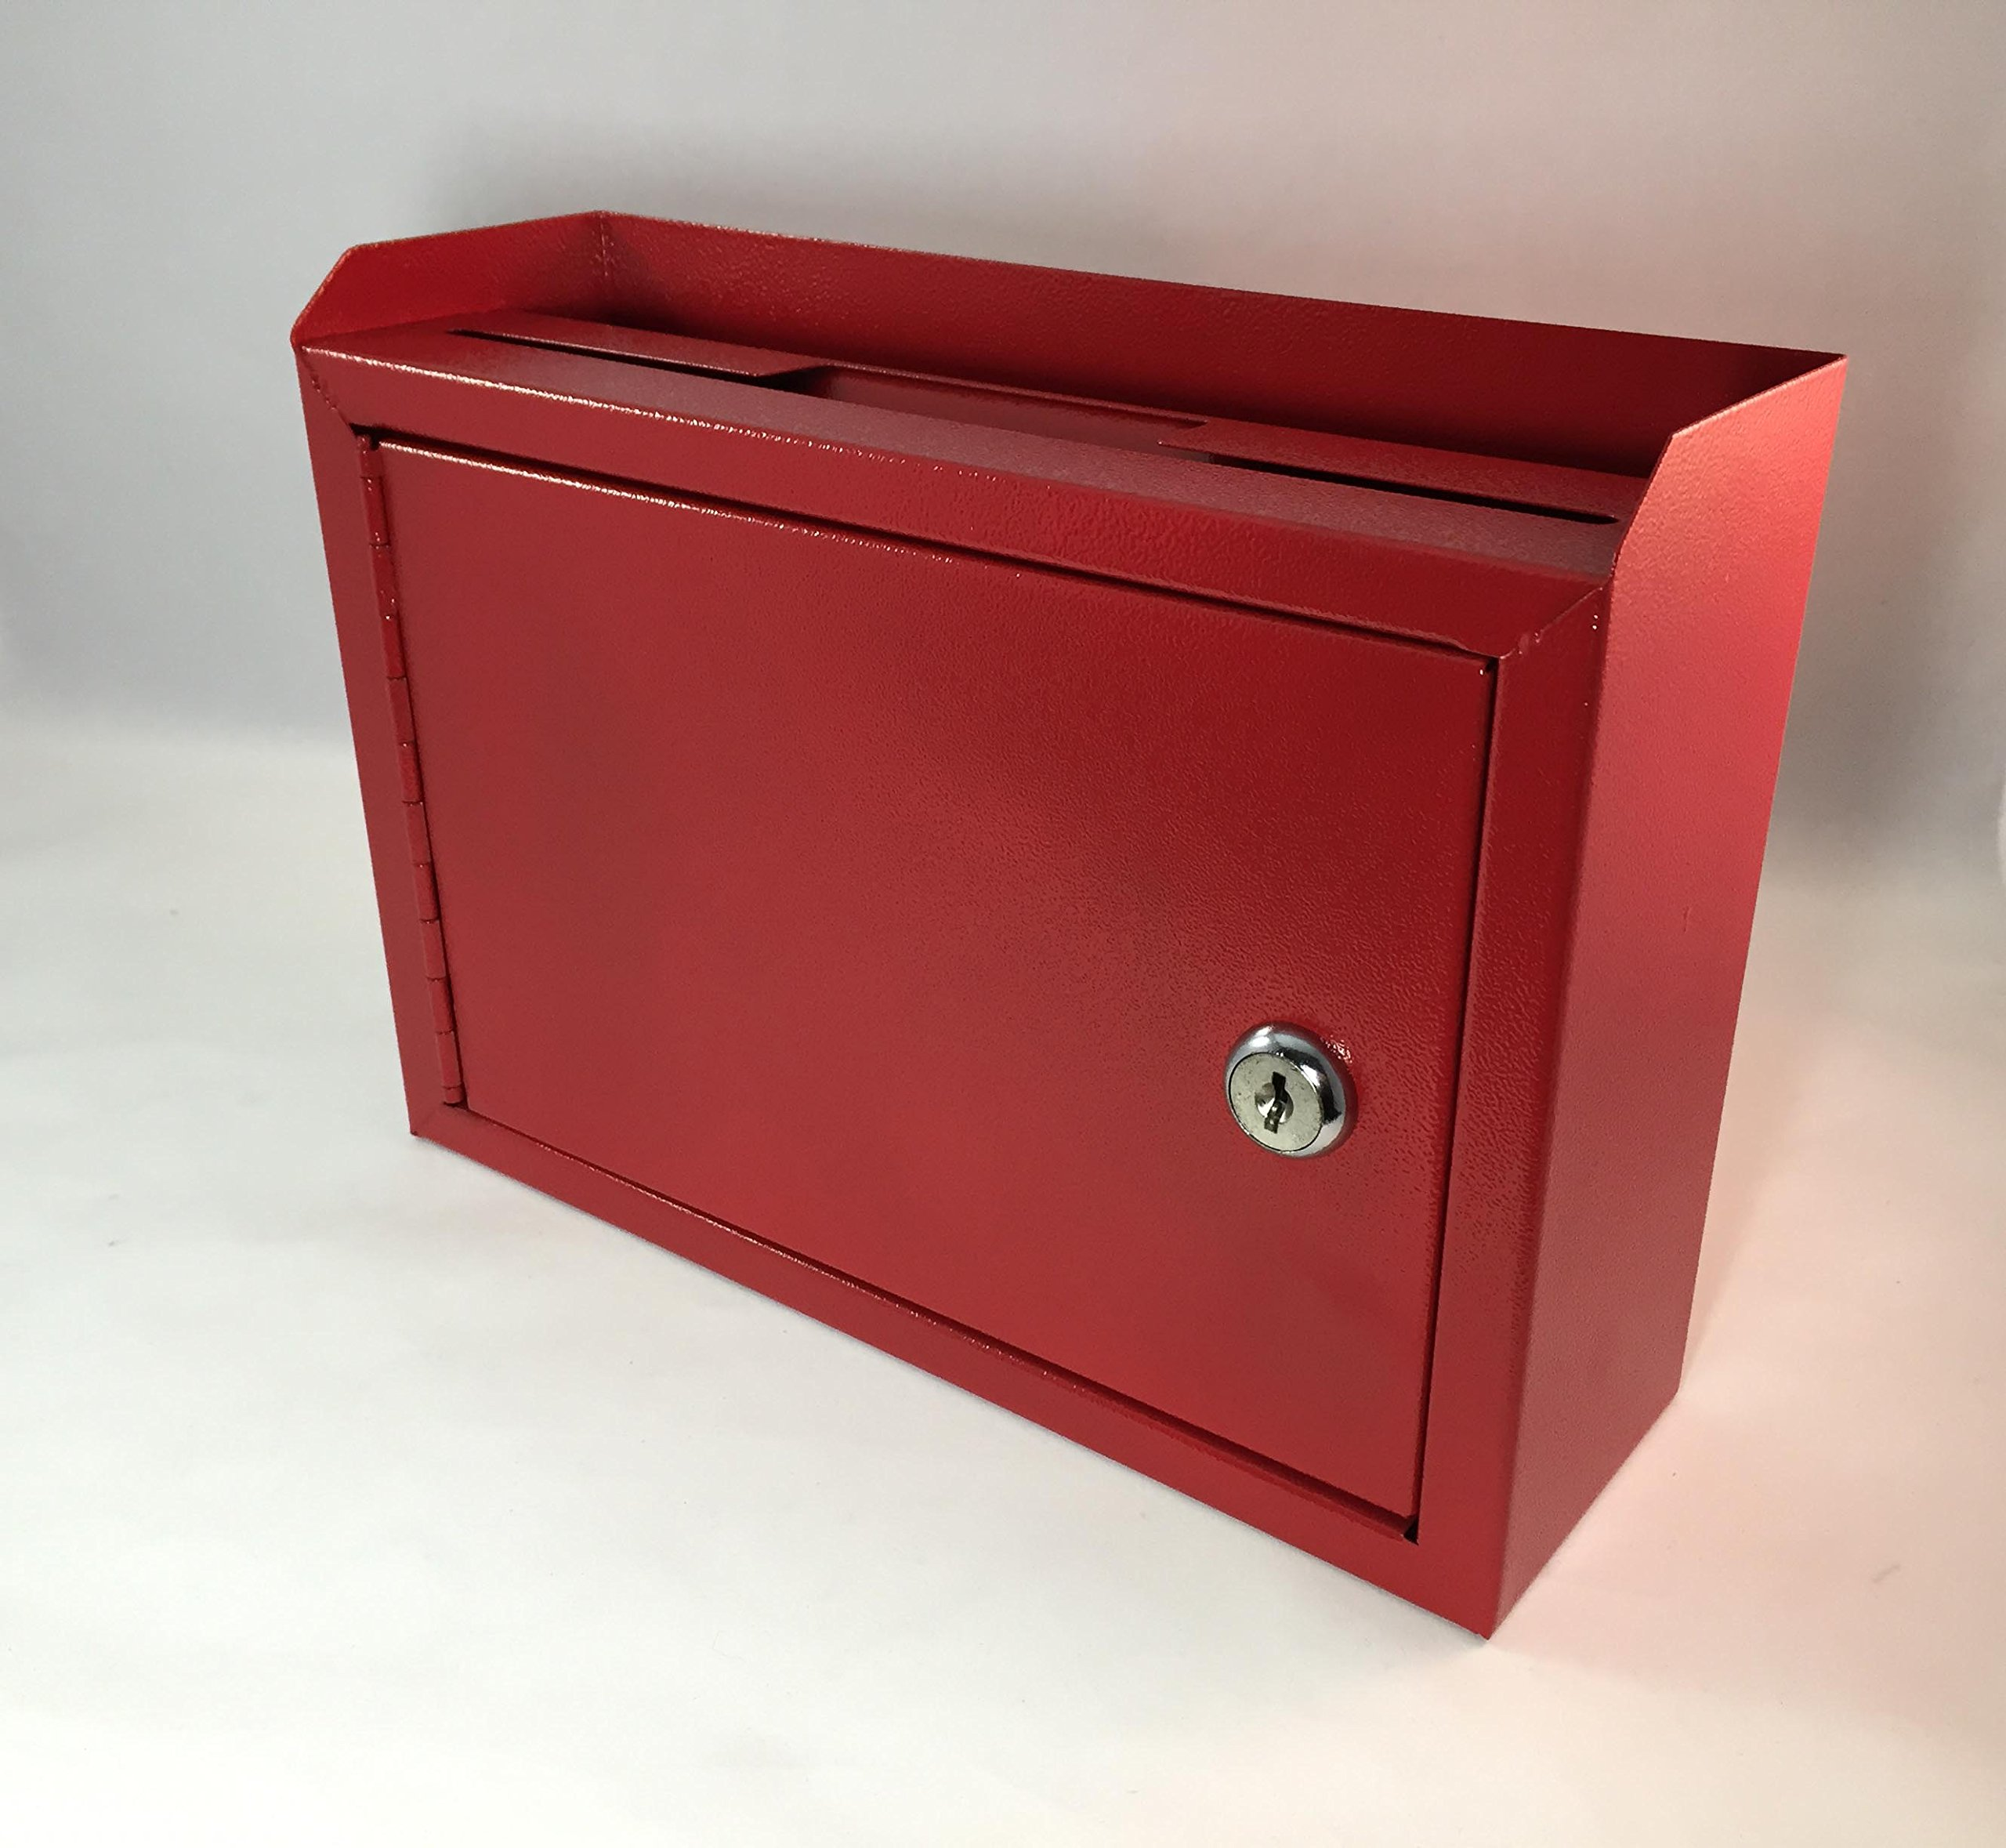 FixtureDisplays 10 x 7.2 x 3'', Metal Multipurpose, Donation Box,Cash and Mail Box,Suggestion Box 15211 red